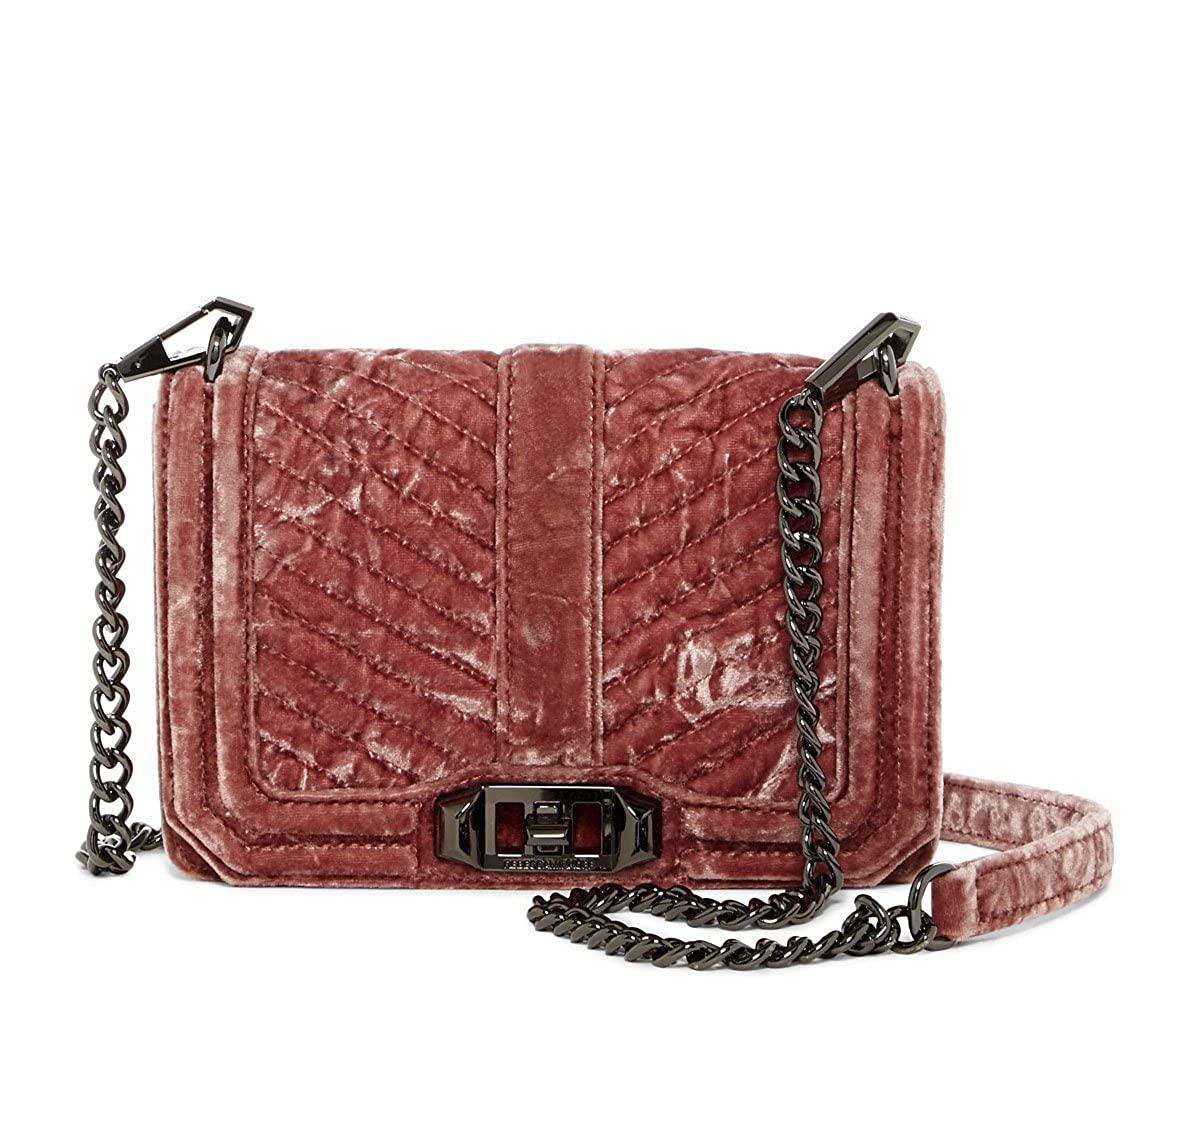 Rebecca Minkoff Soft Pink Velvet Small Love Crossbody Bag